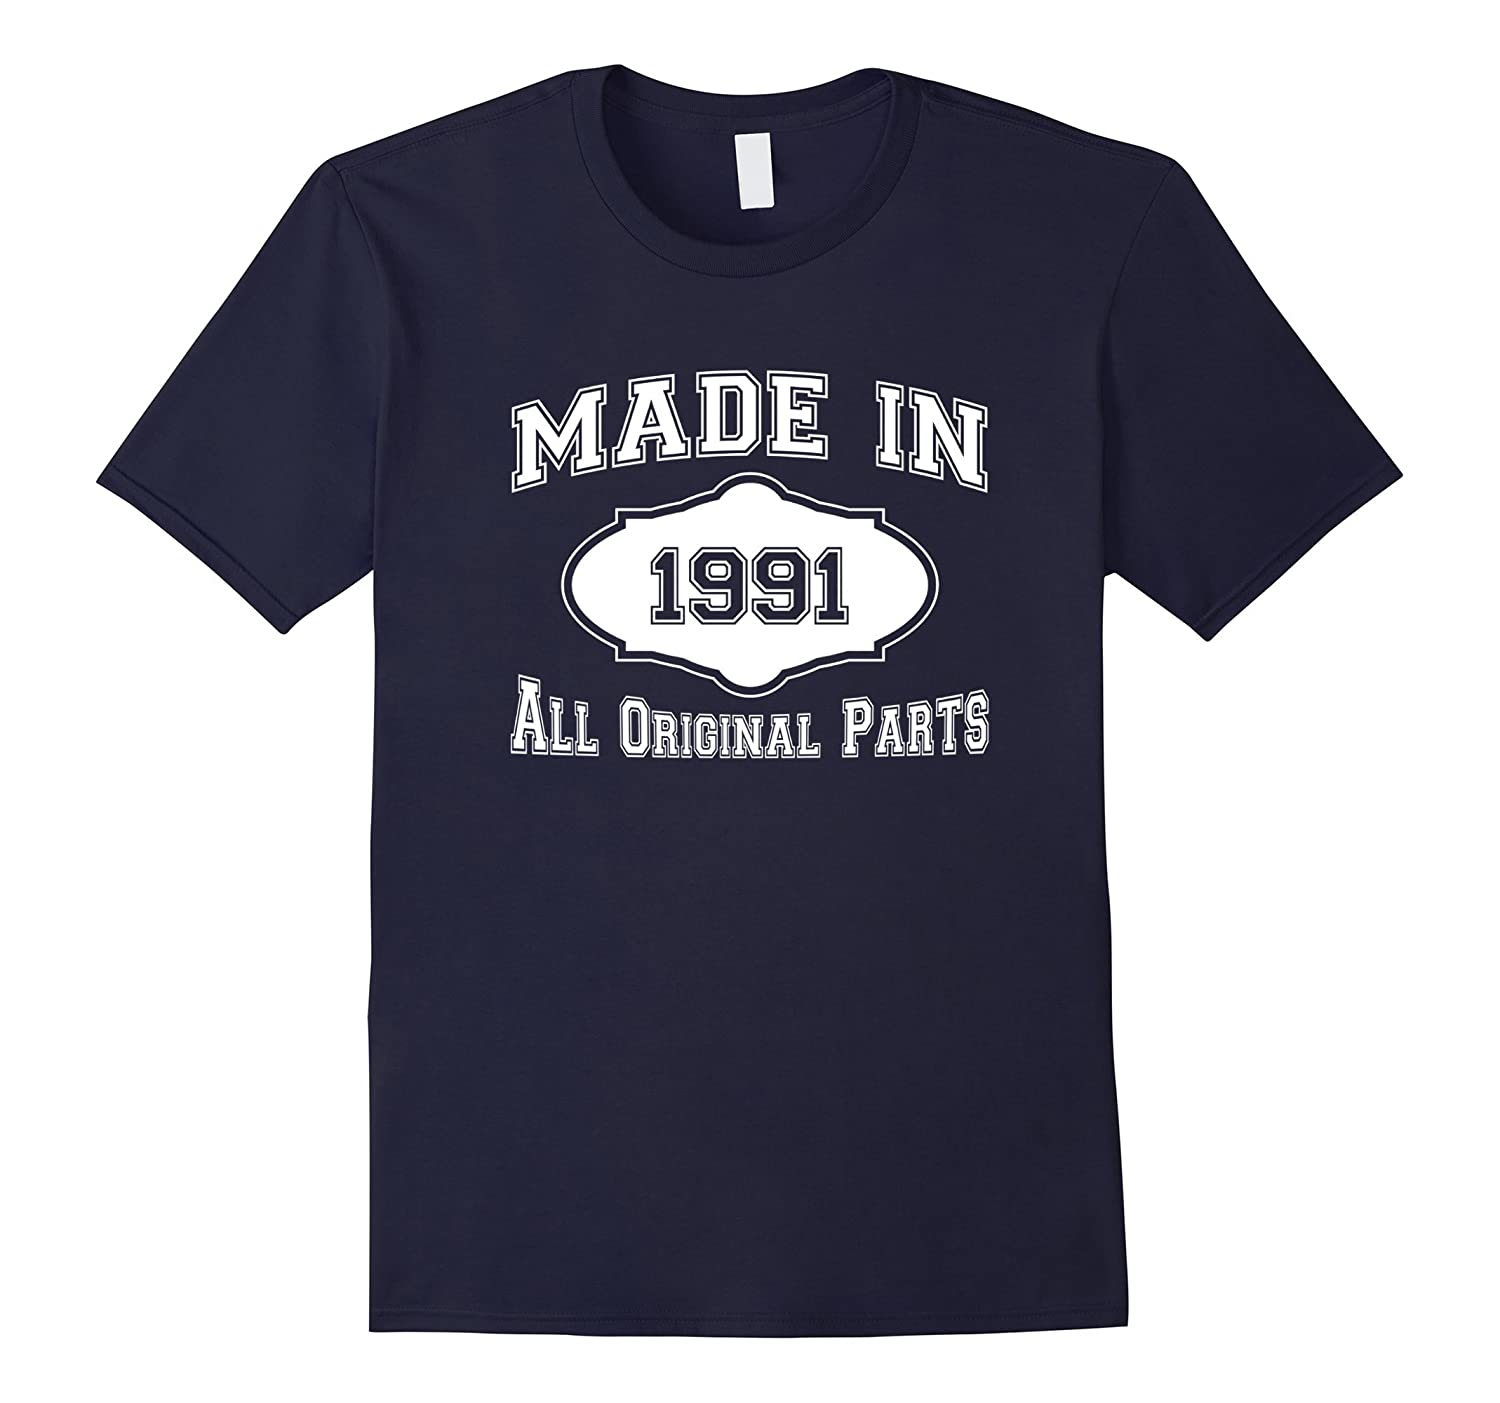 26th Birthday Gifts Made In 1991 All Original Parts T-Shirt-Vaci